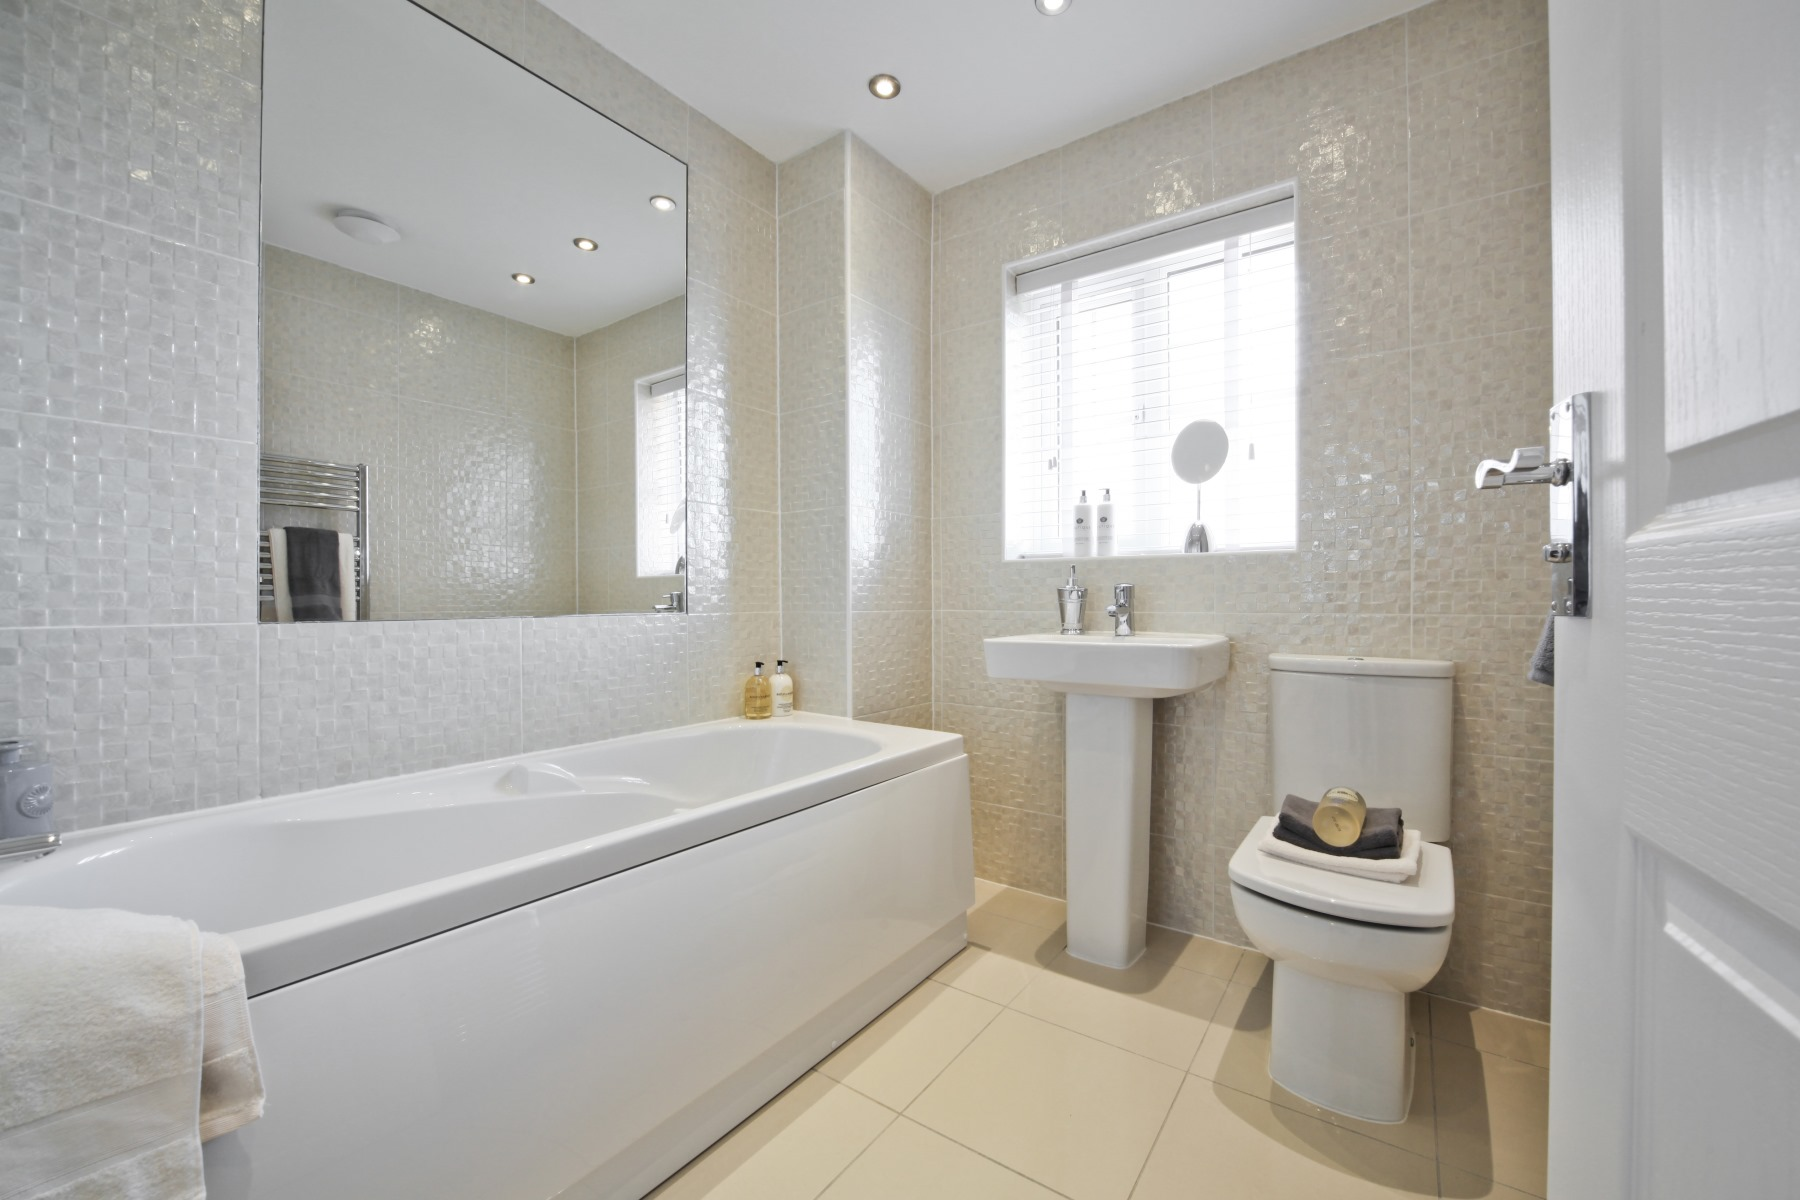 Knutsford Bathroom - Nightingale Gardens